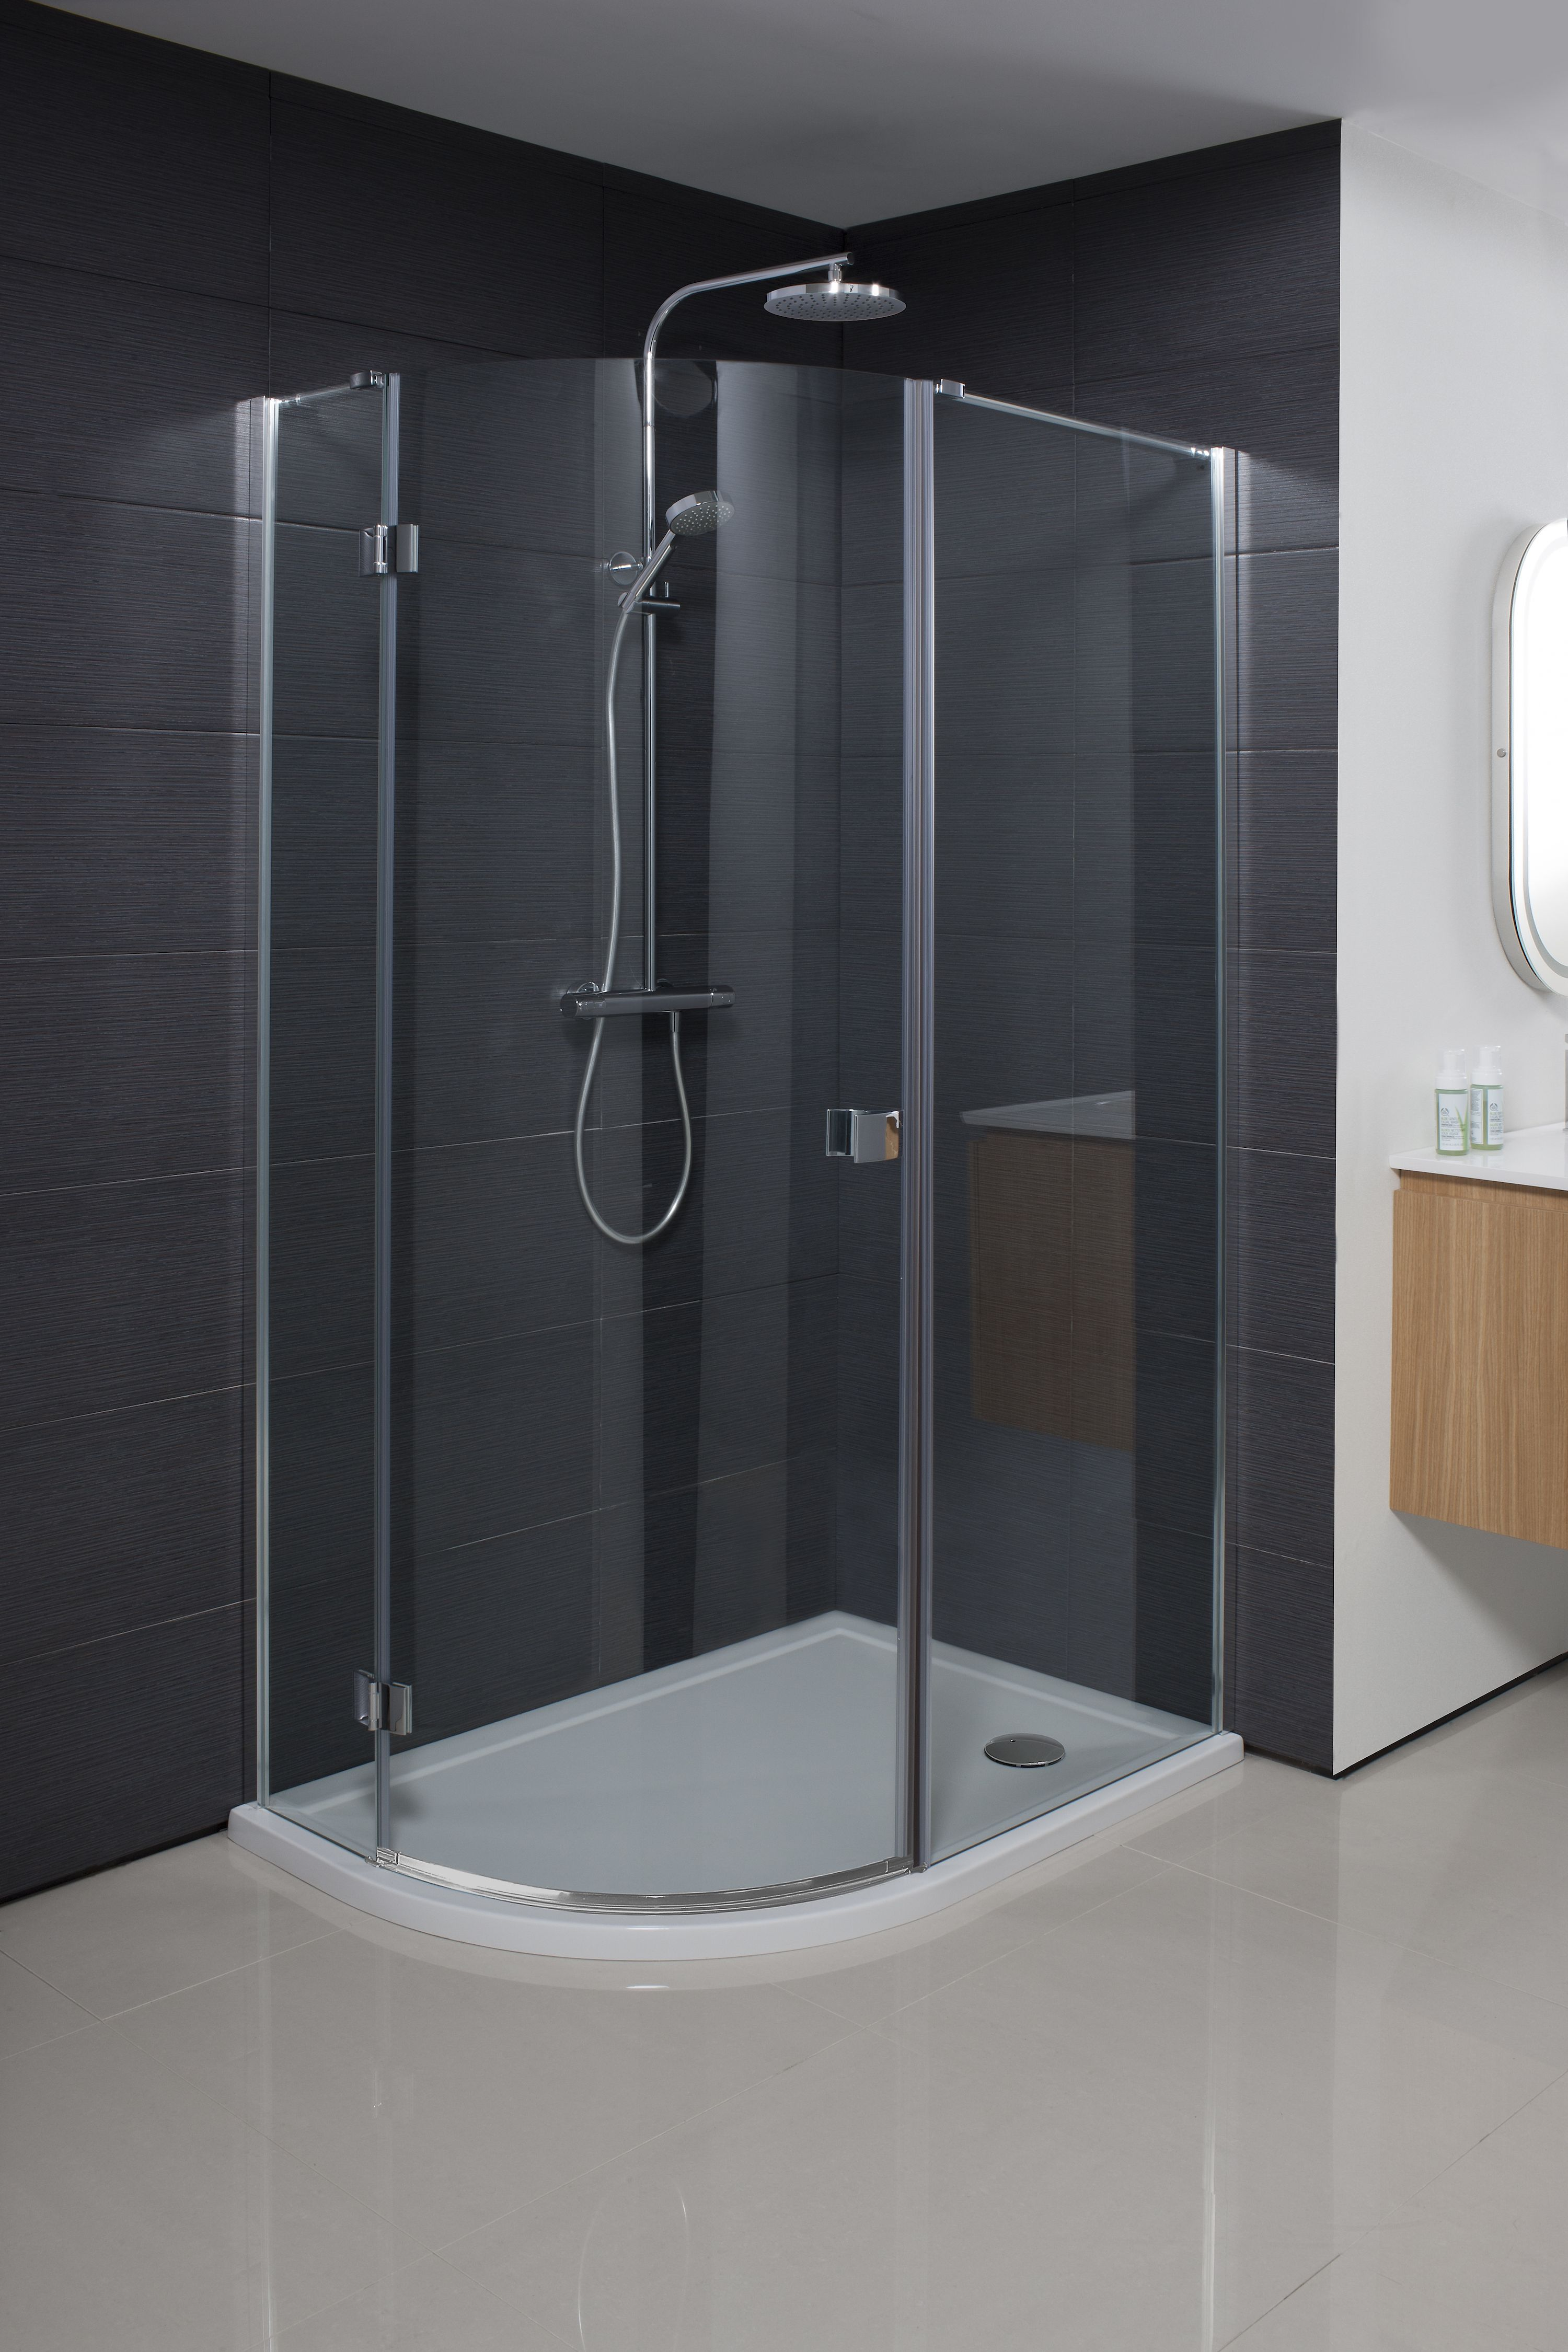 Design 8 Quadrant Single Door Shower Enclosure Glass Shower Enclosures Quadrant Shower Enclosures